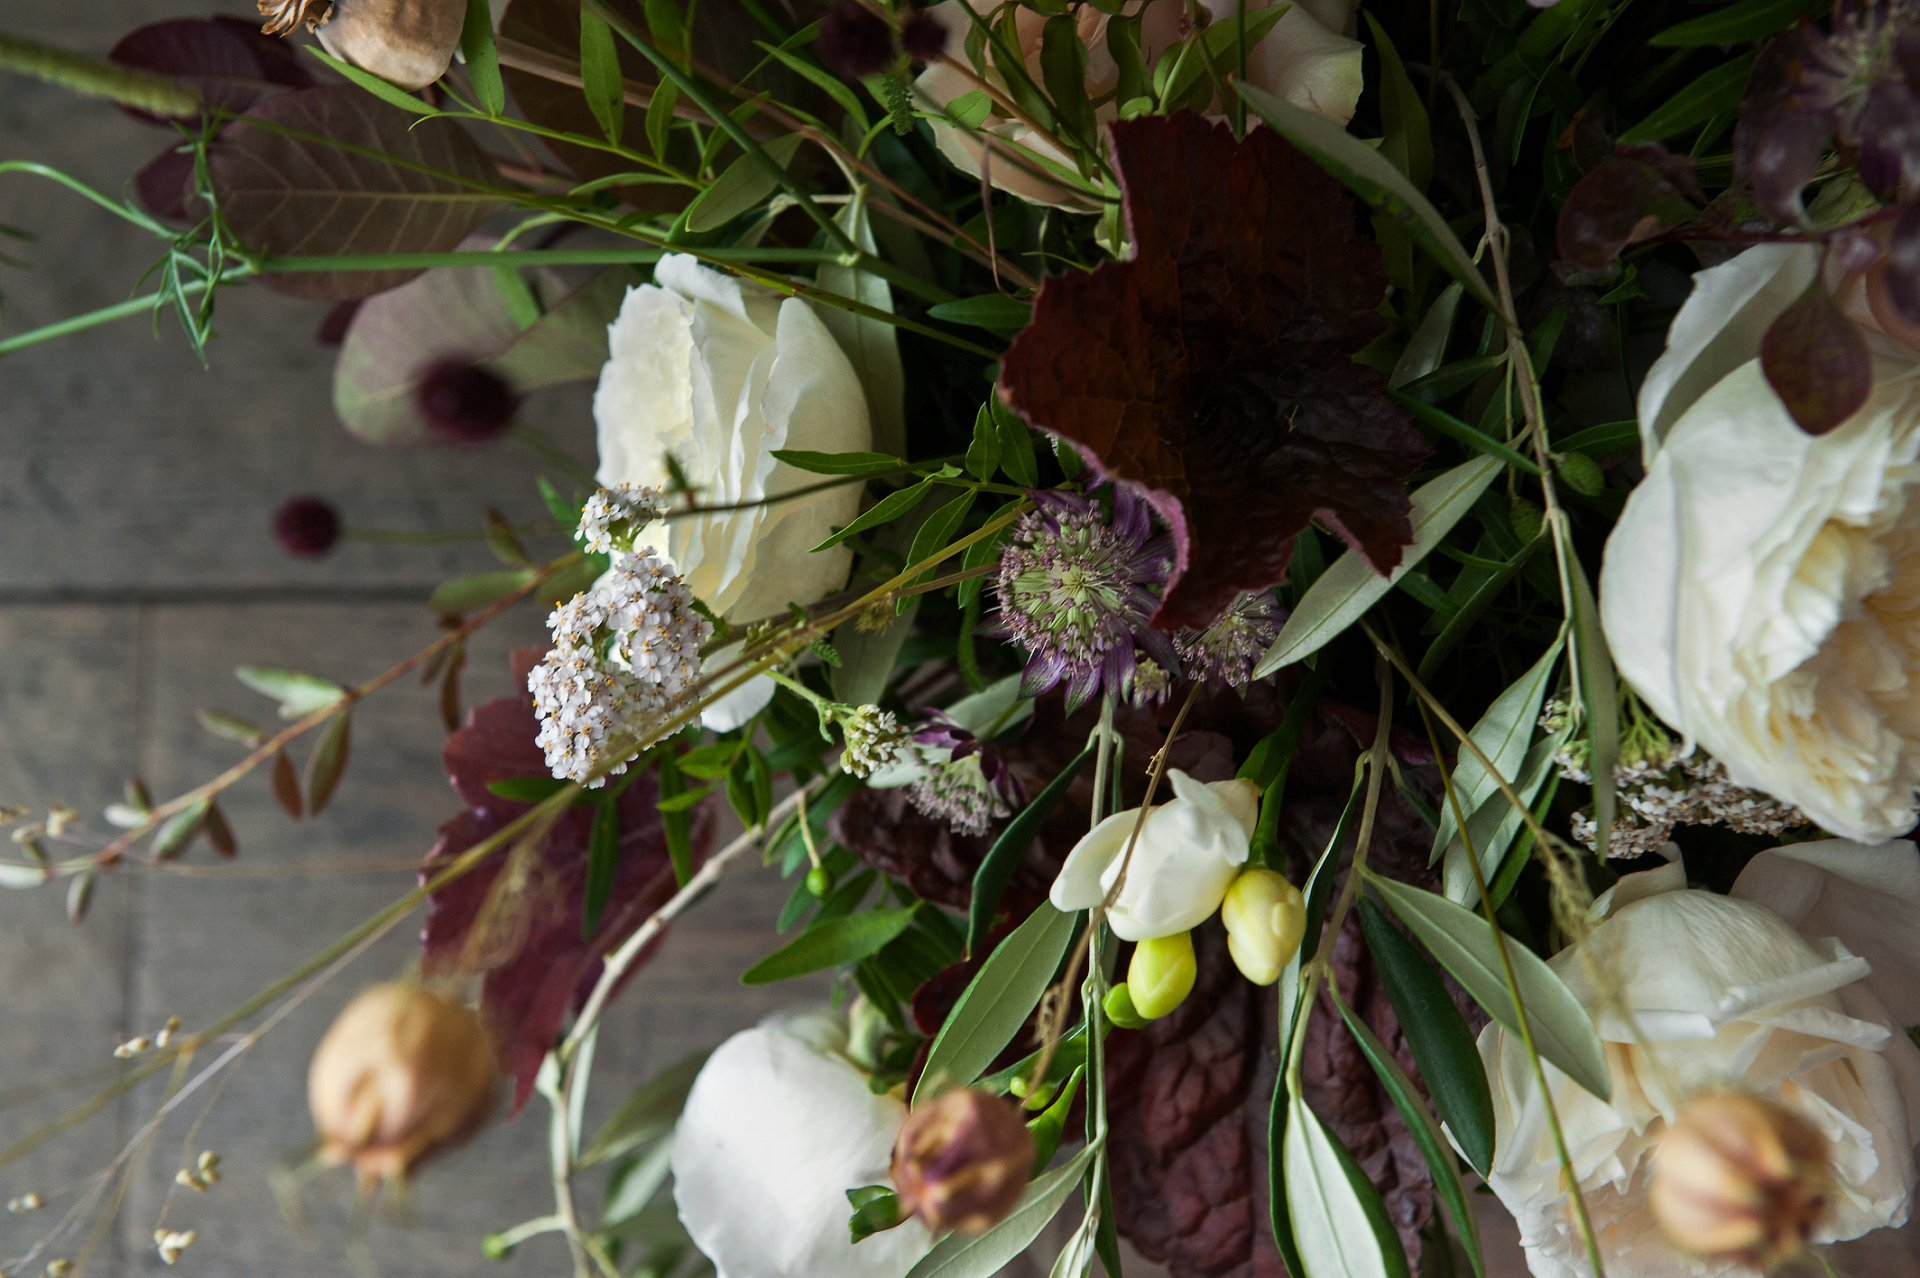 London Florist Bloomologie for natural English flowers with a truly wild feeling. Alison Billenness specialises in bespoke floral designs for weddings, parties and events throughout the UK. This design photographed by Emma Duggan - a registry office specialist photographer at Chelsea Register Office, Mayfair Library, Greenwich Register Office and registry offices throughout London and the south east